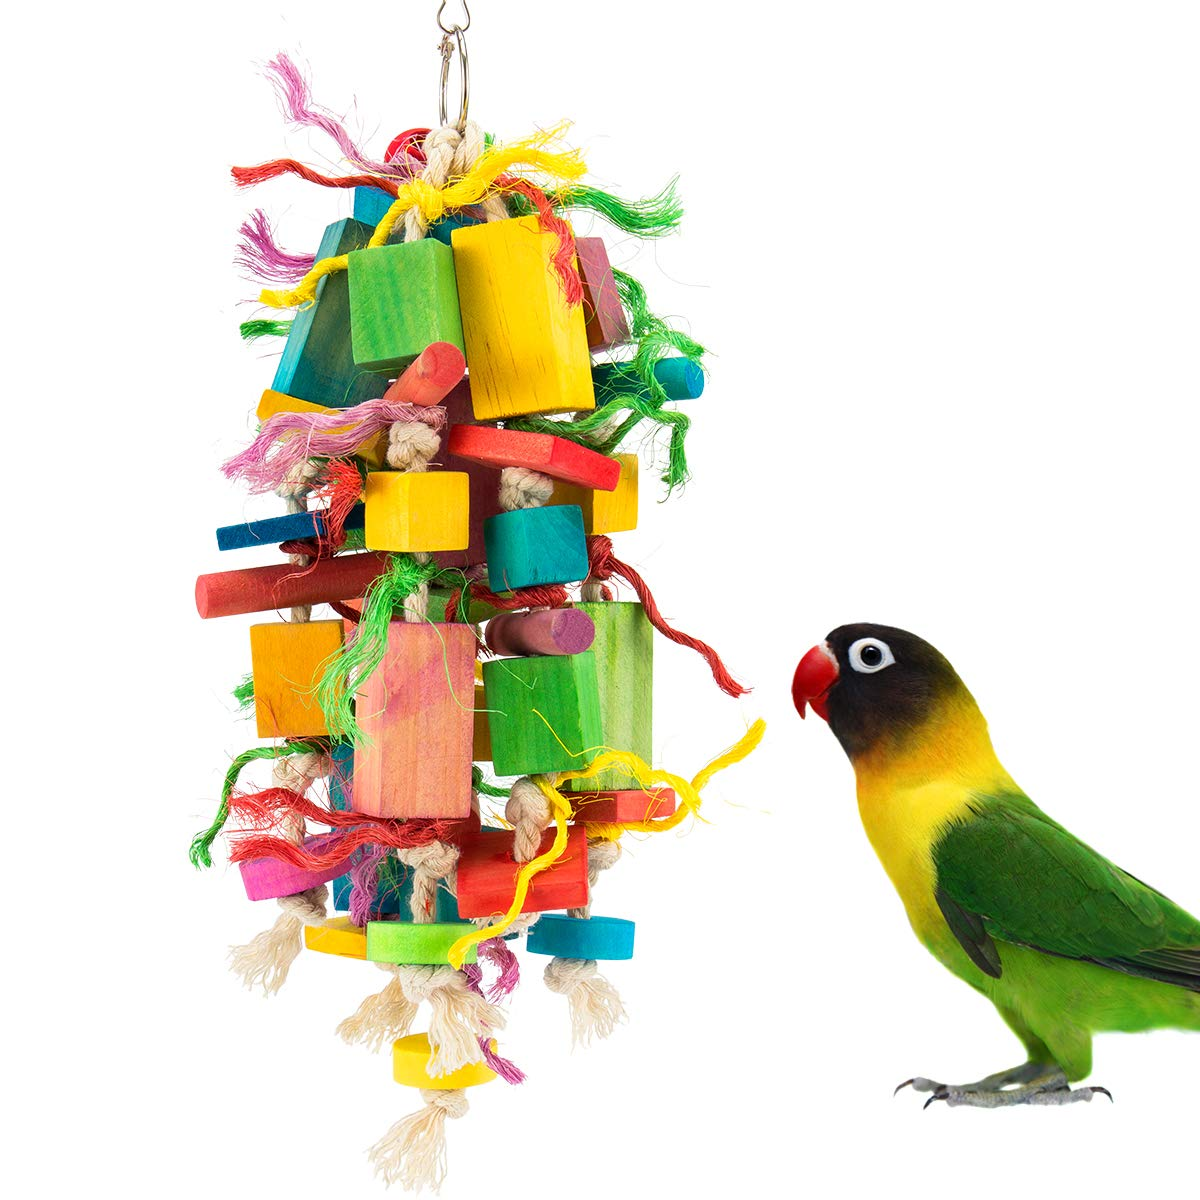 MEWTOGO Medium Bird Parrot Toys - Multicolored Wooden Blocks Tearing Toys for Conures Cockatiels African Grey Foraging and Amazon Parrot Toys by MEWTOGO